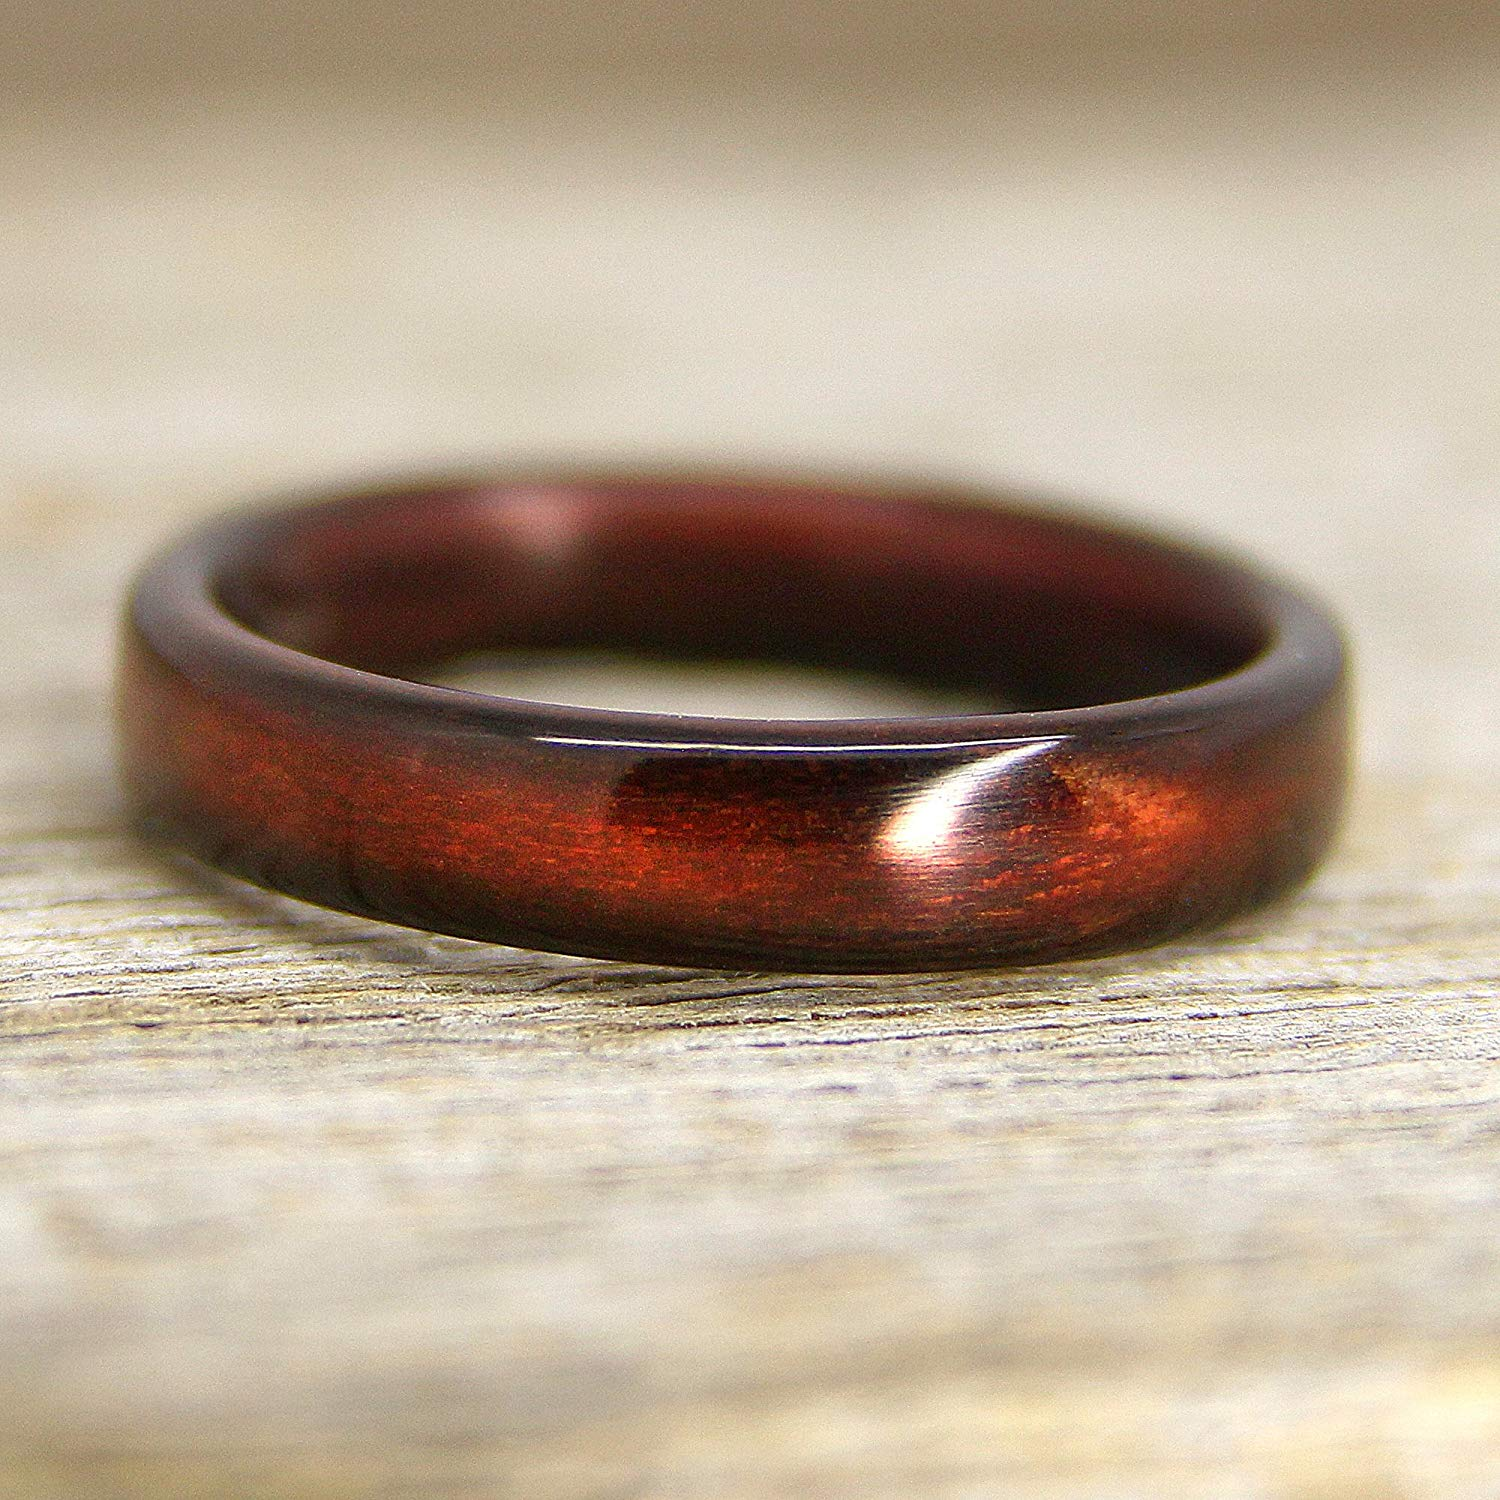 """Shou Sugi Ban """"Torched Cedar"""" Bentwood Ring - Handcrafted Bent Wood Ring - Custom Made - Wedding, Engagement, Etc"""